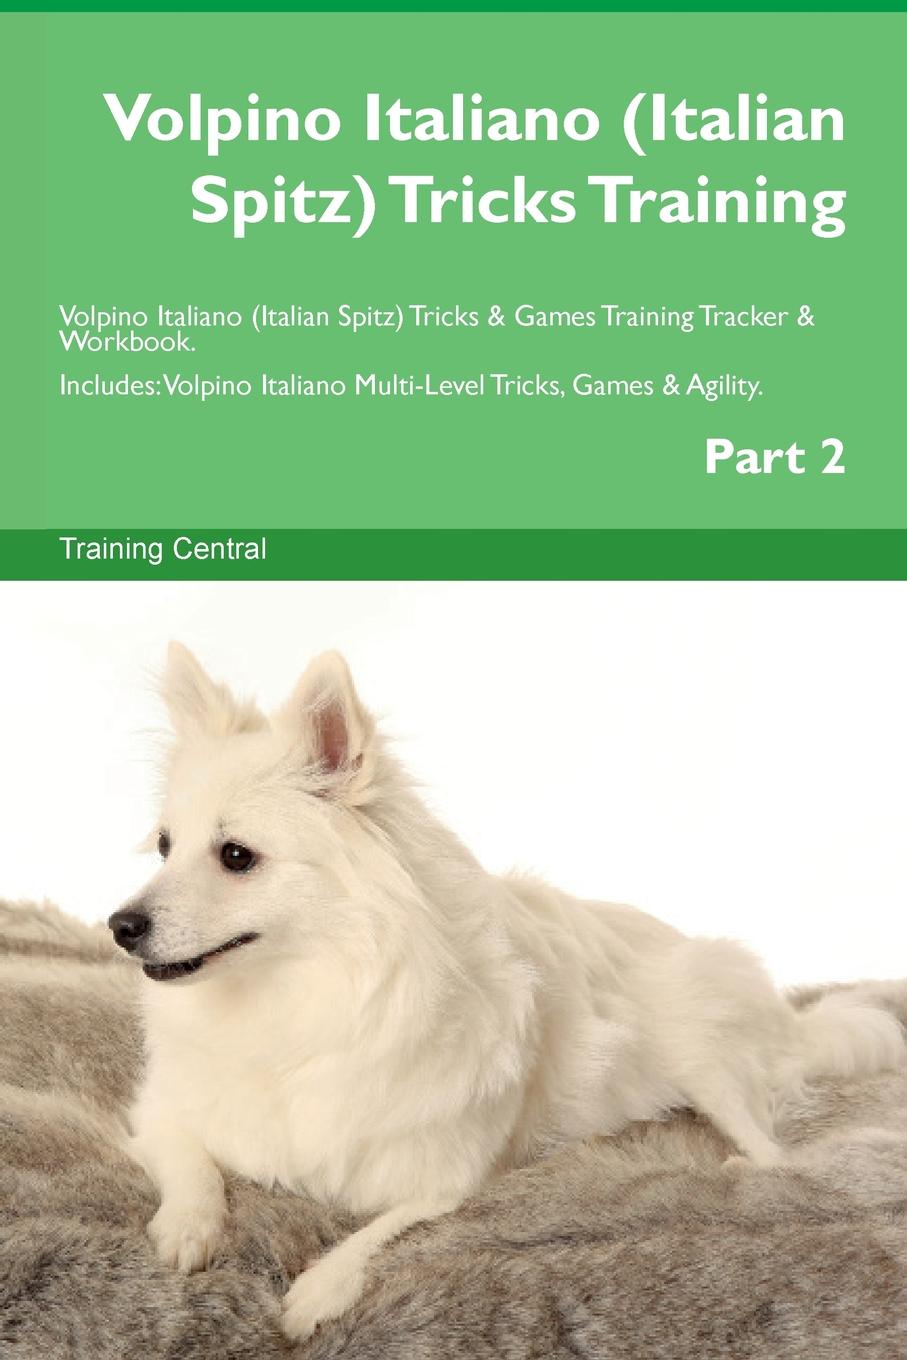 Training Central Volpino Italiano (Italian Spitz) Tricks Training Volpino Italiano (Italian Spitz) Tricks . Games Training Tracker . Workbook. Includes. Volpino Italiano Multi-Level Tricks, Games . Agility. Part 2 this book loves you